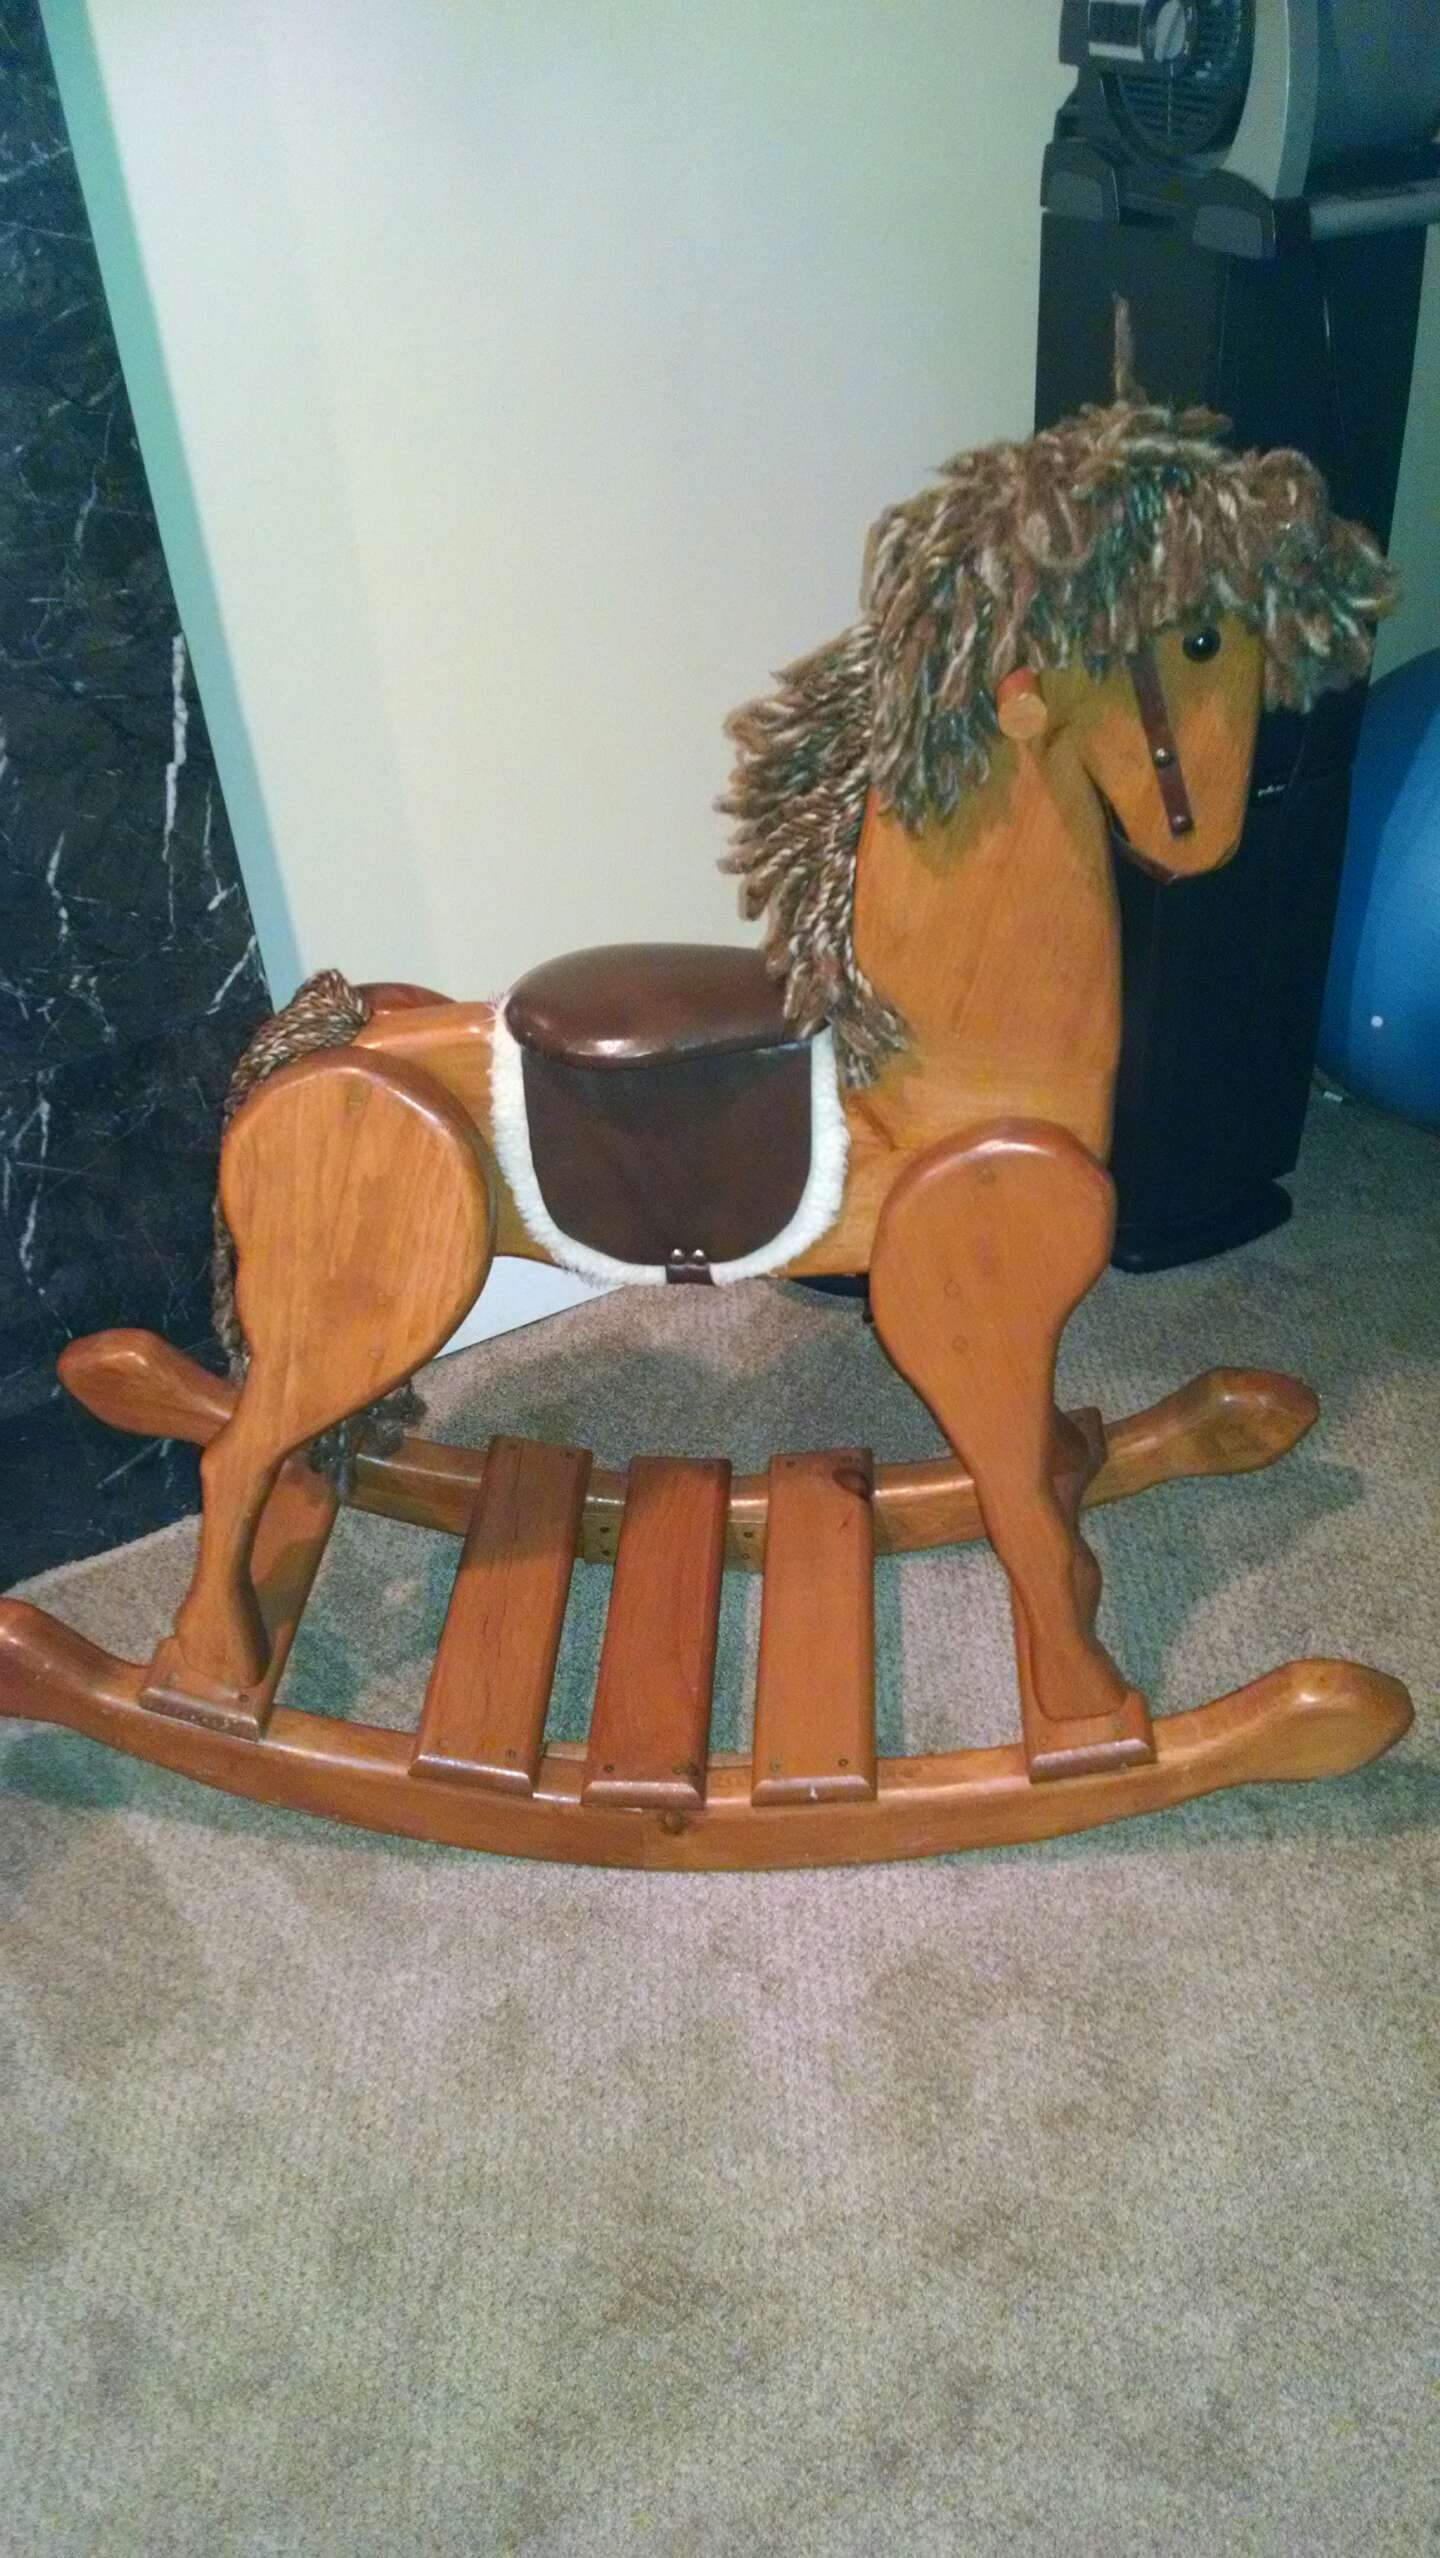 wooden rocking horse for sale in woburn ma 5miles buy and sell. Black Bedroom Furniture Sets. Home Design Ideas